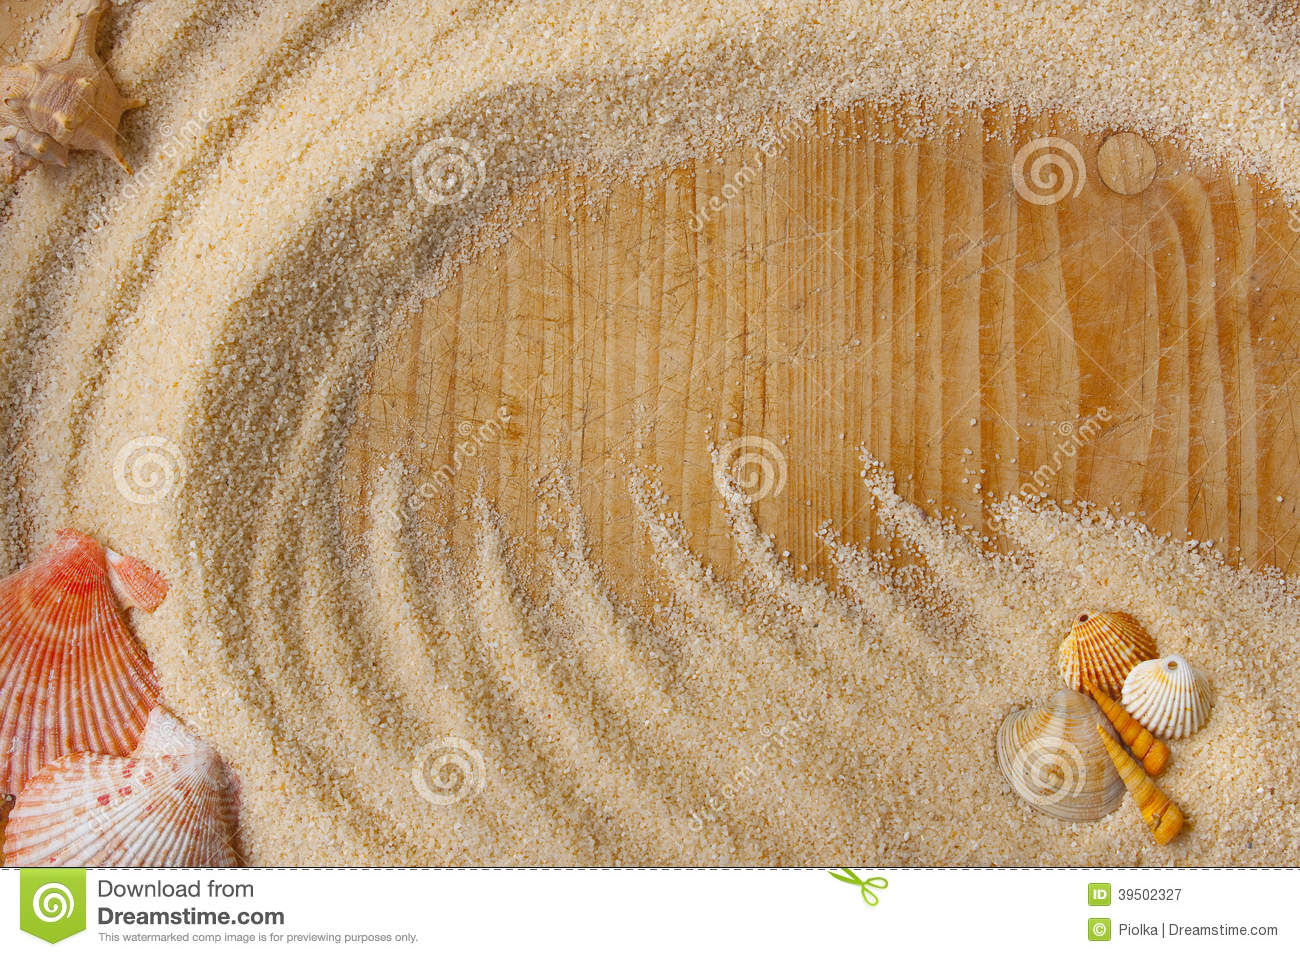 Shells and sand background